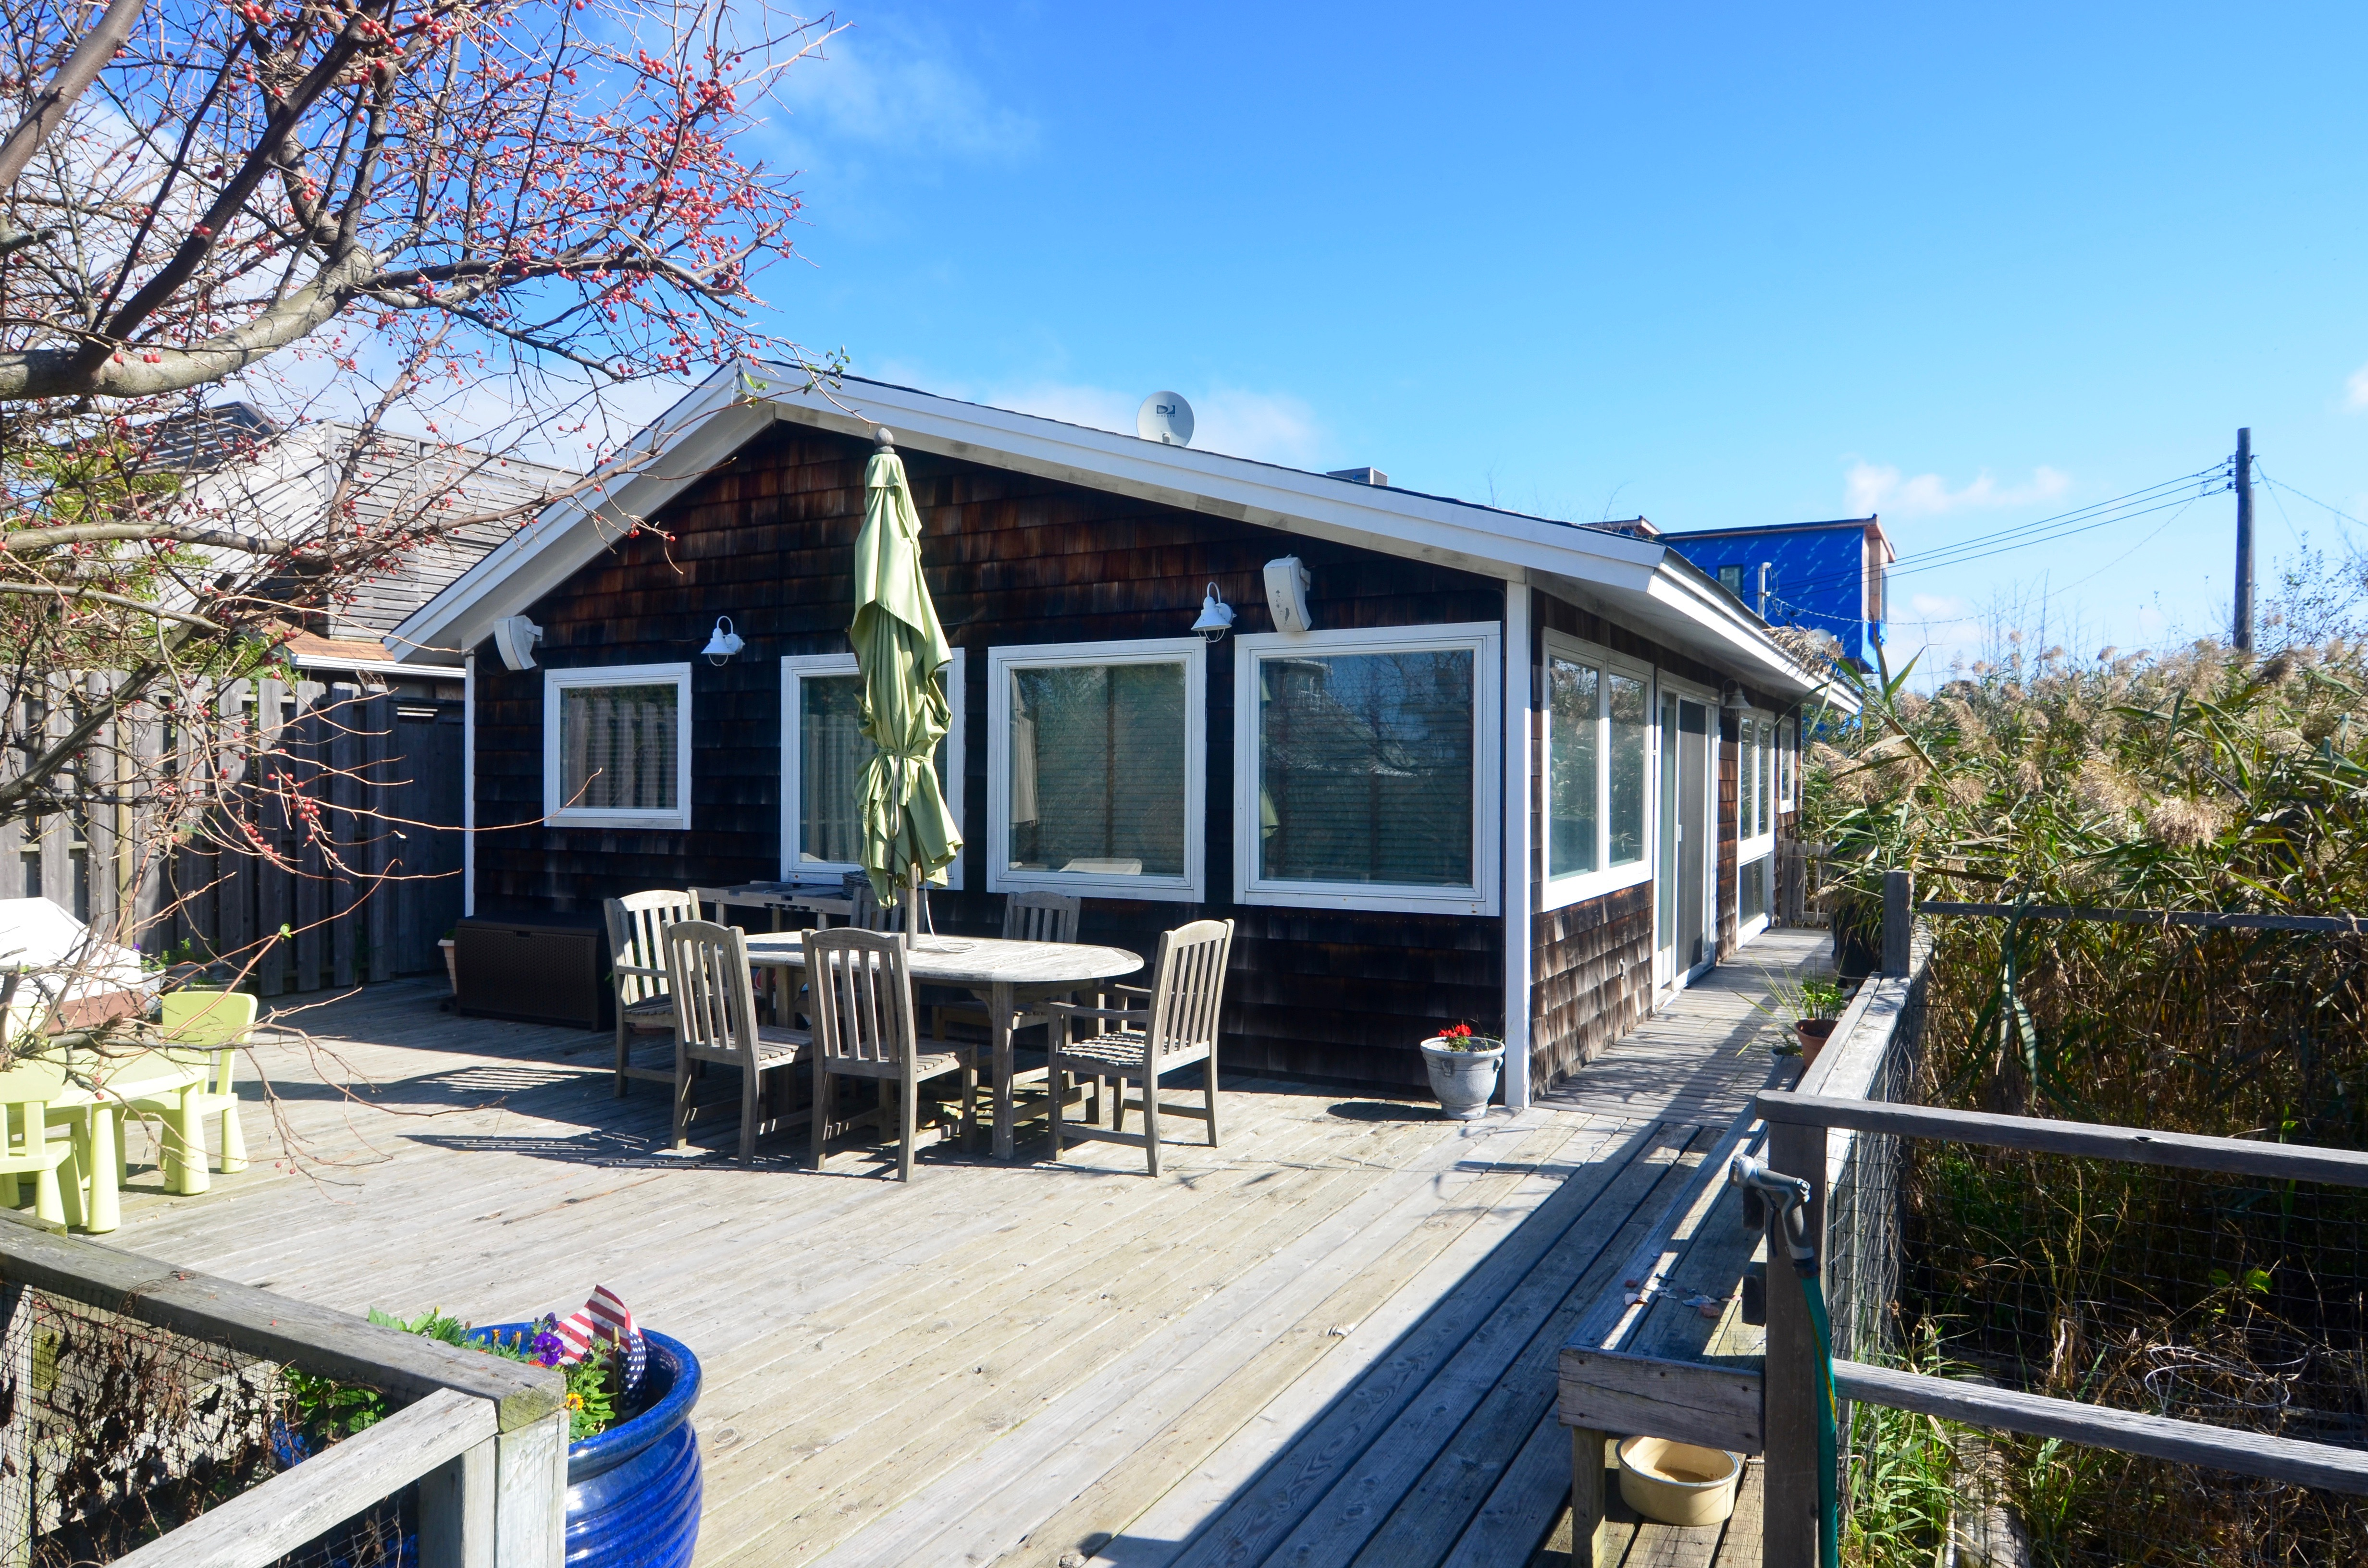 This 3 bedroom, 1.5 bathroom home has it all! Great location near the Seaview border. Sunny west facing deck. Designer kitchen with Miele and Subzero appliances. Open layout great for family gatherings. Both bathrooms are nicely renovated. Available for 2 week increments. July weeks $5,000. August weeks $5,500.